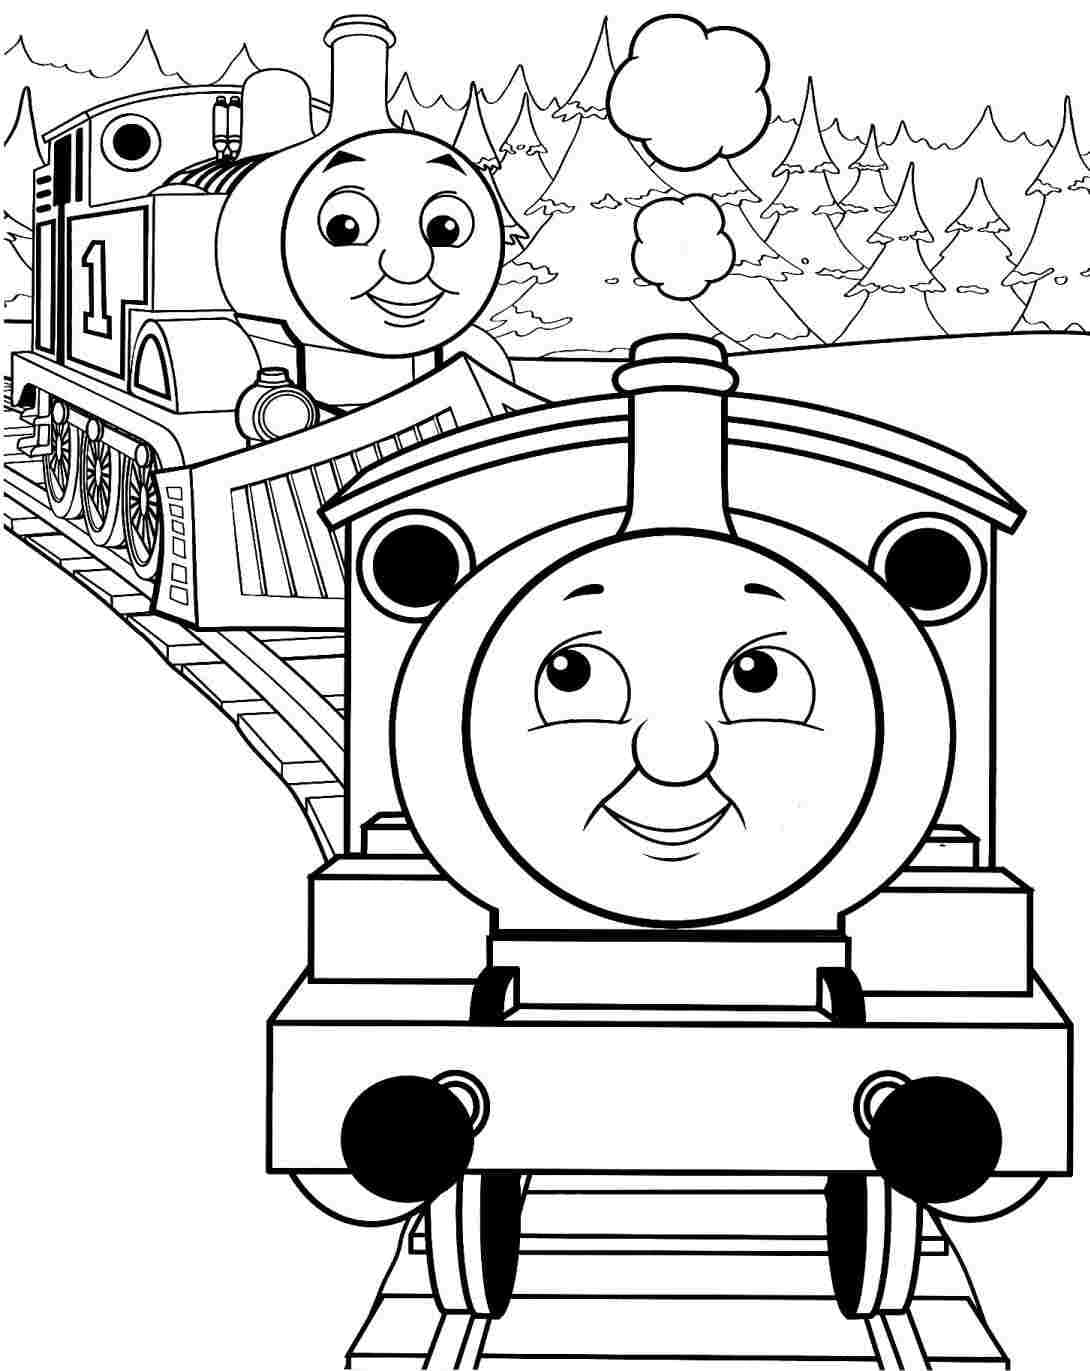 Thomas The Train Coloring Page Simple Pages